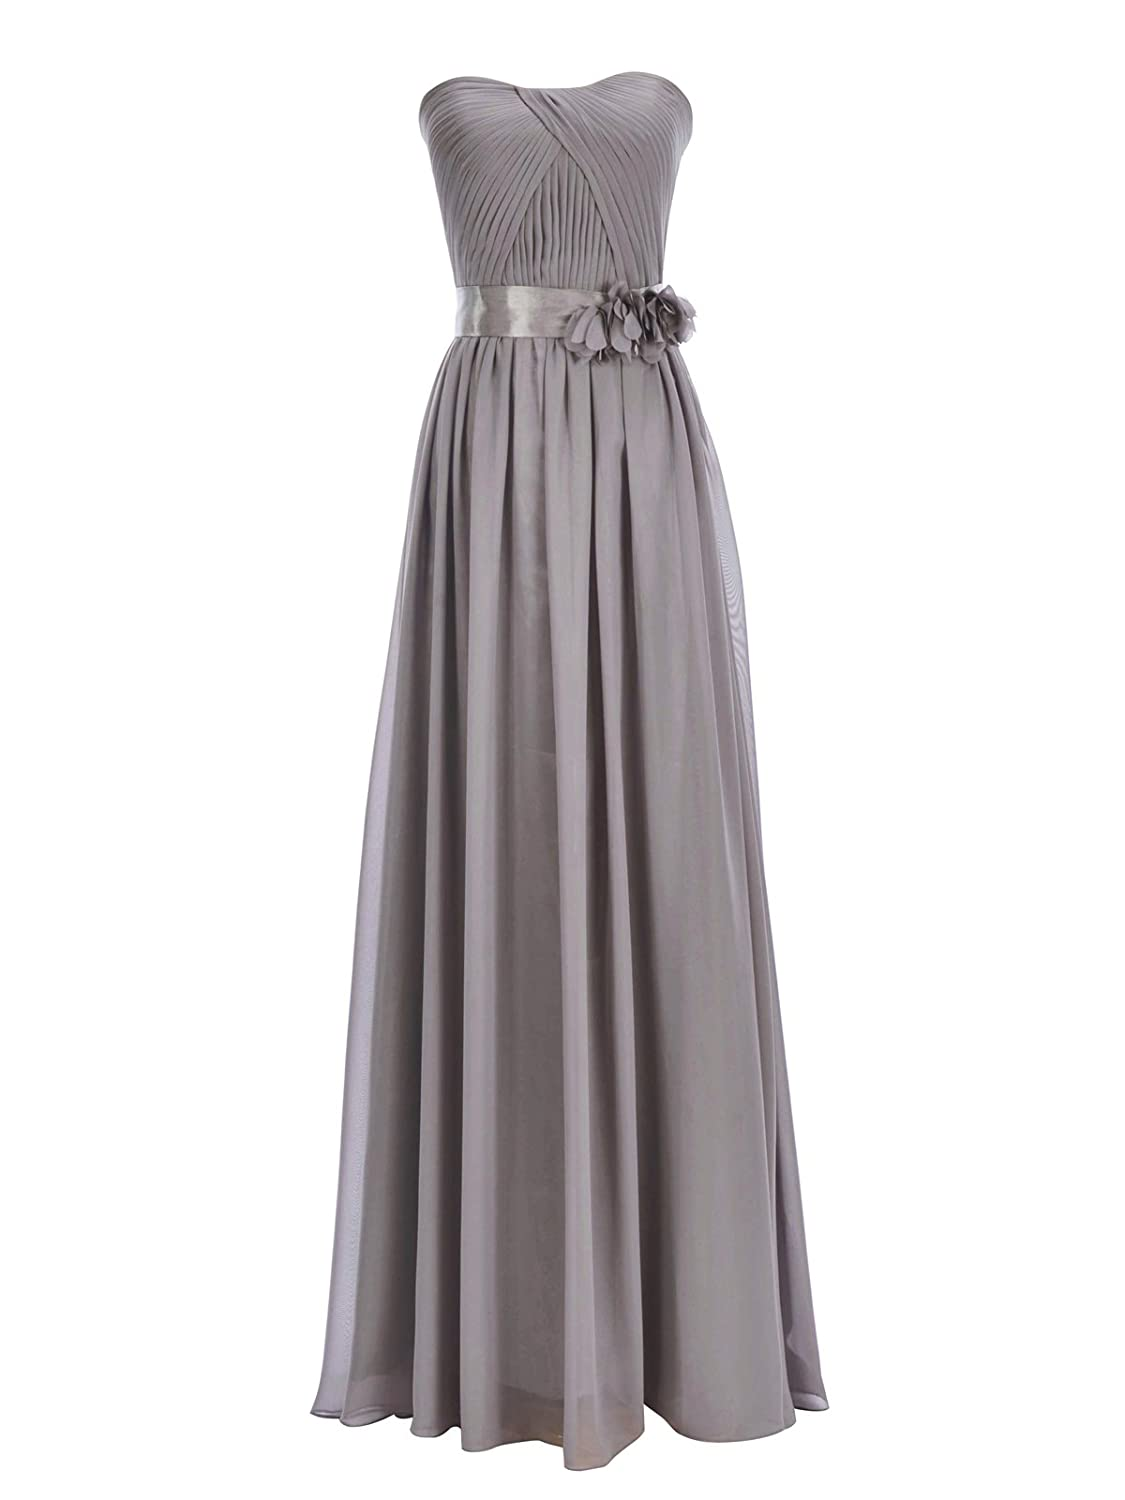 Remedios Chiffon Bridesmaid Dress Evening Wedding Party Dress Long Prom Gown